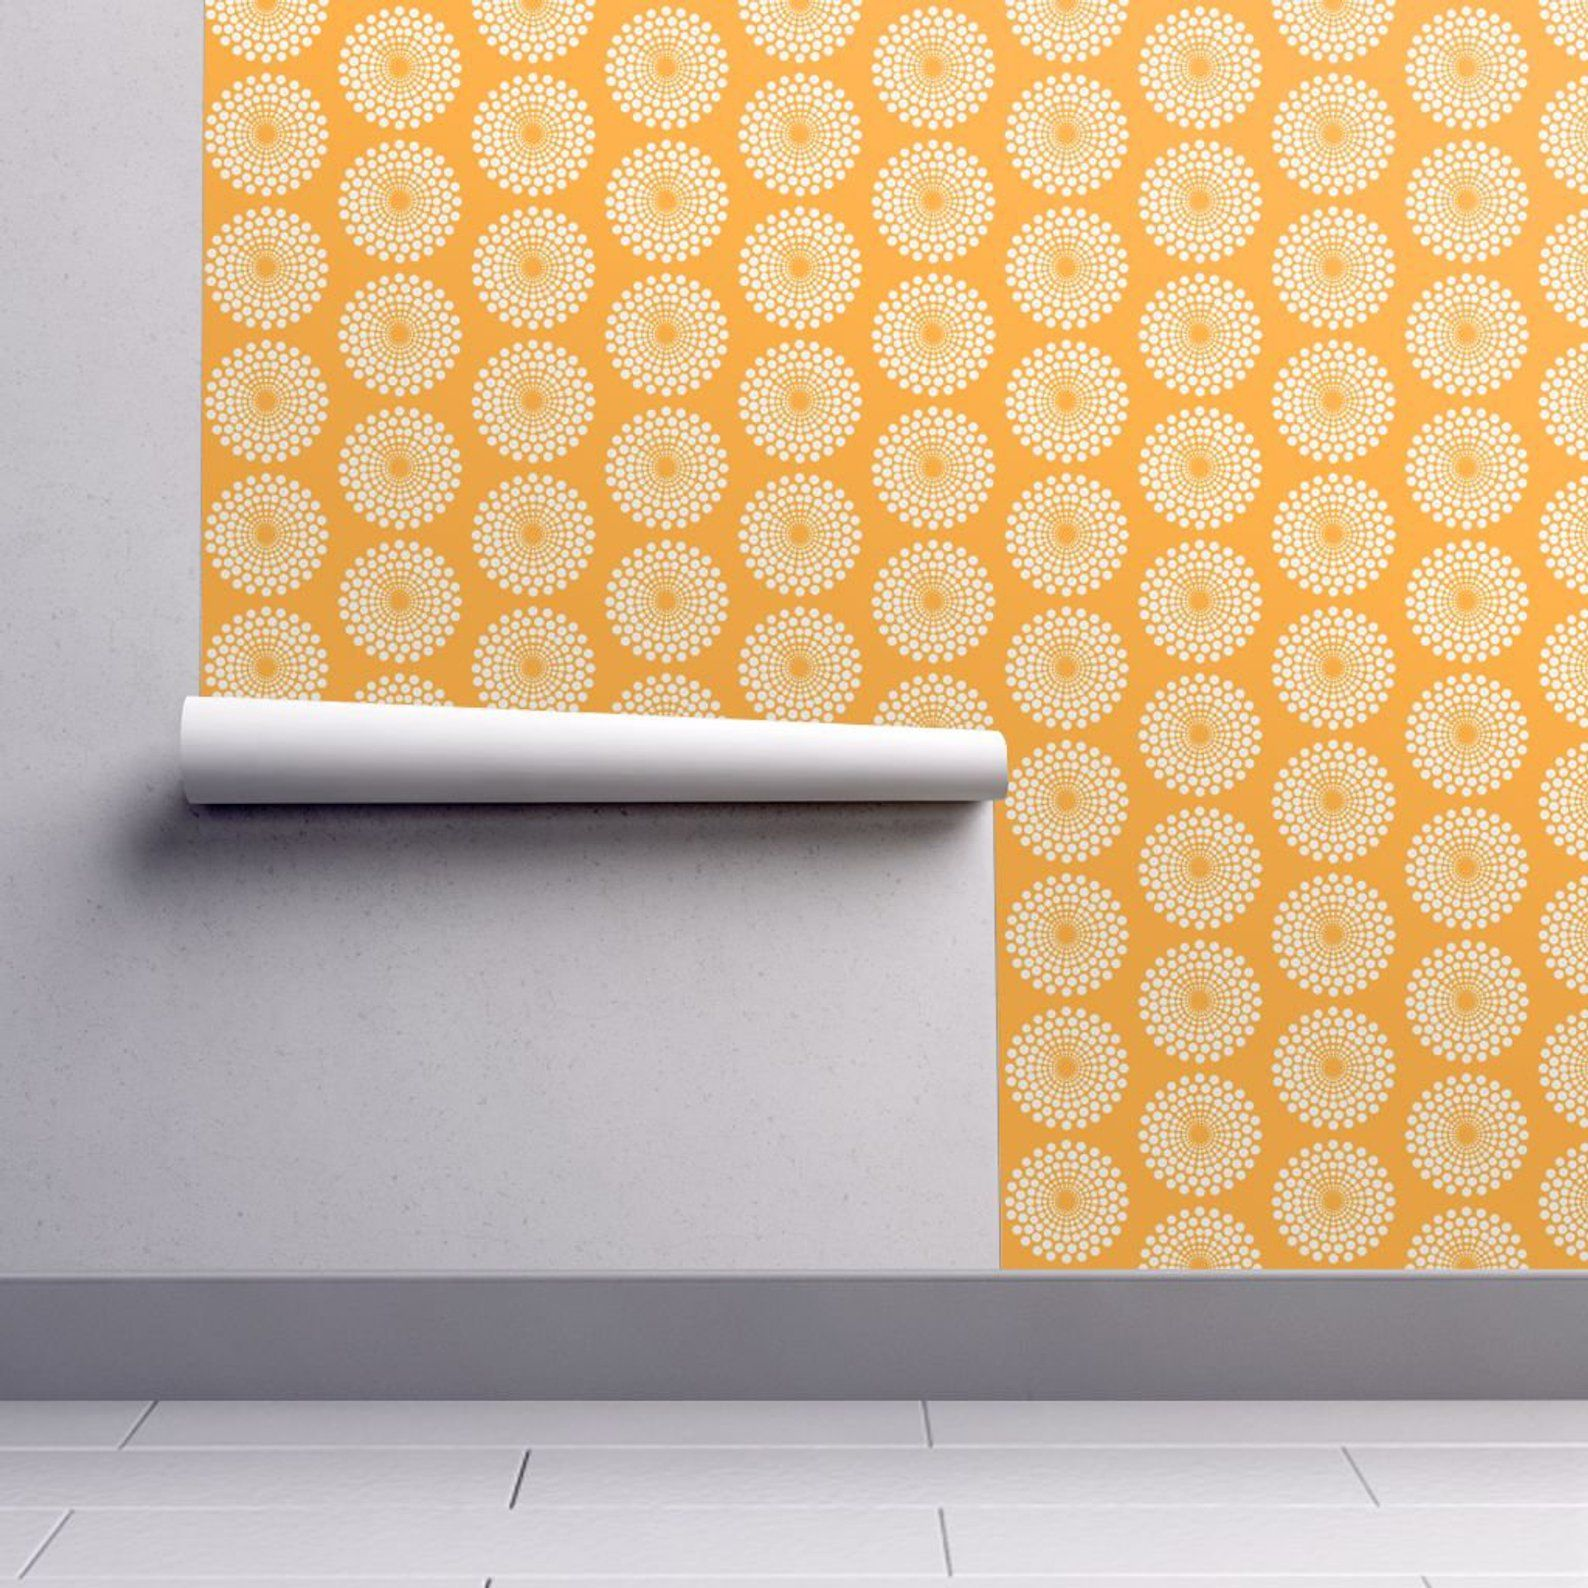 Removable Wallpaper Blue Orange Watercolor Autumn Shapes Peel And Stick Wallpaper Nursery Wallpaper Self Adhesive Wallpaper Removable Wallpaper Nursery Wallpaper Removable Wallpaper Kitchen